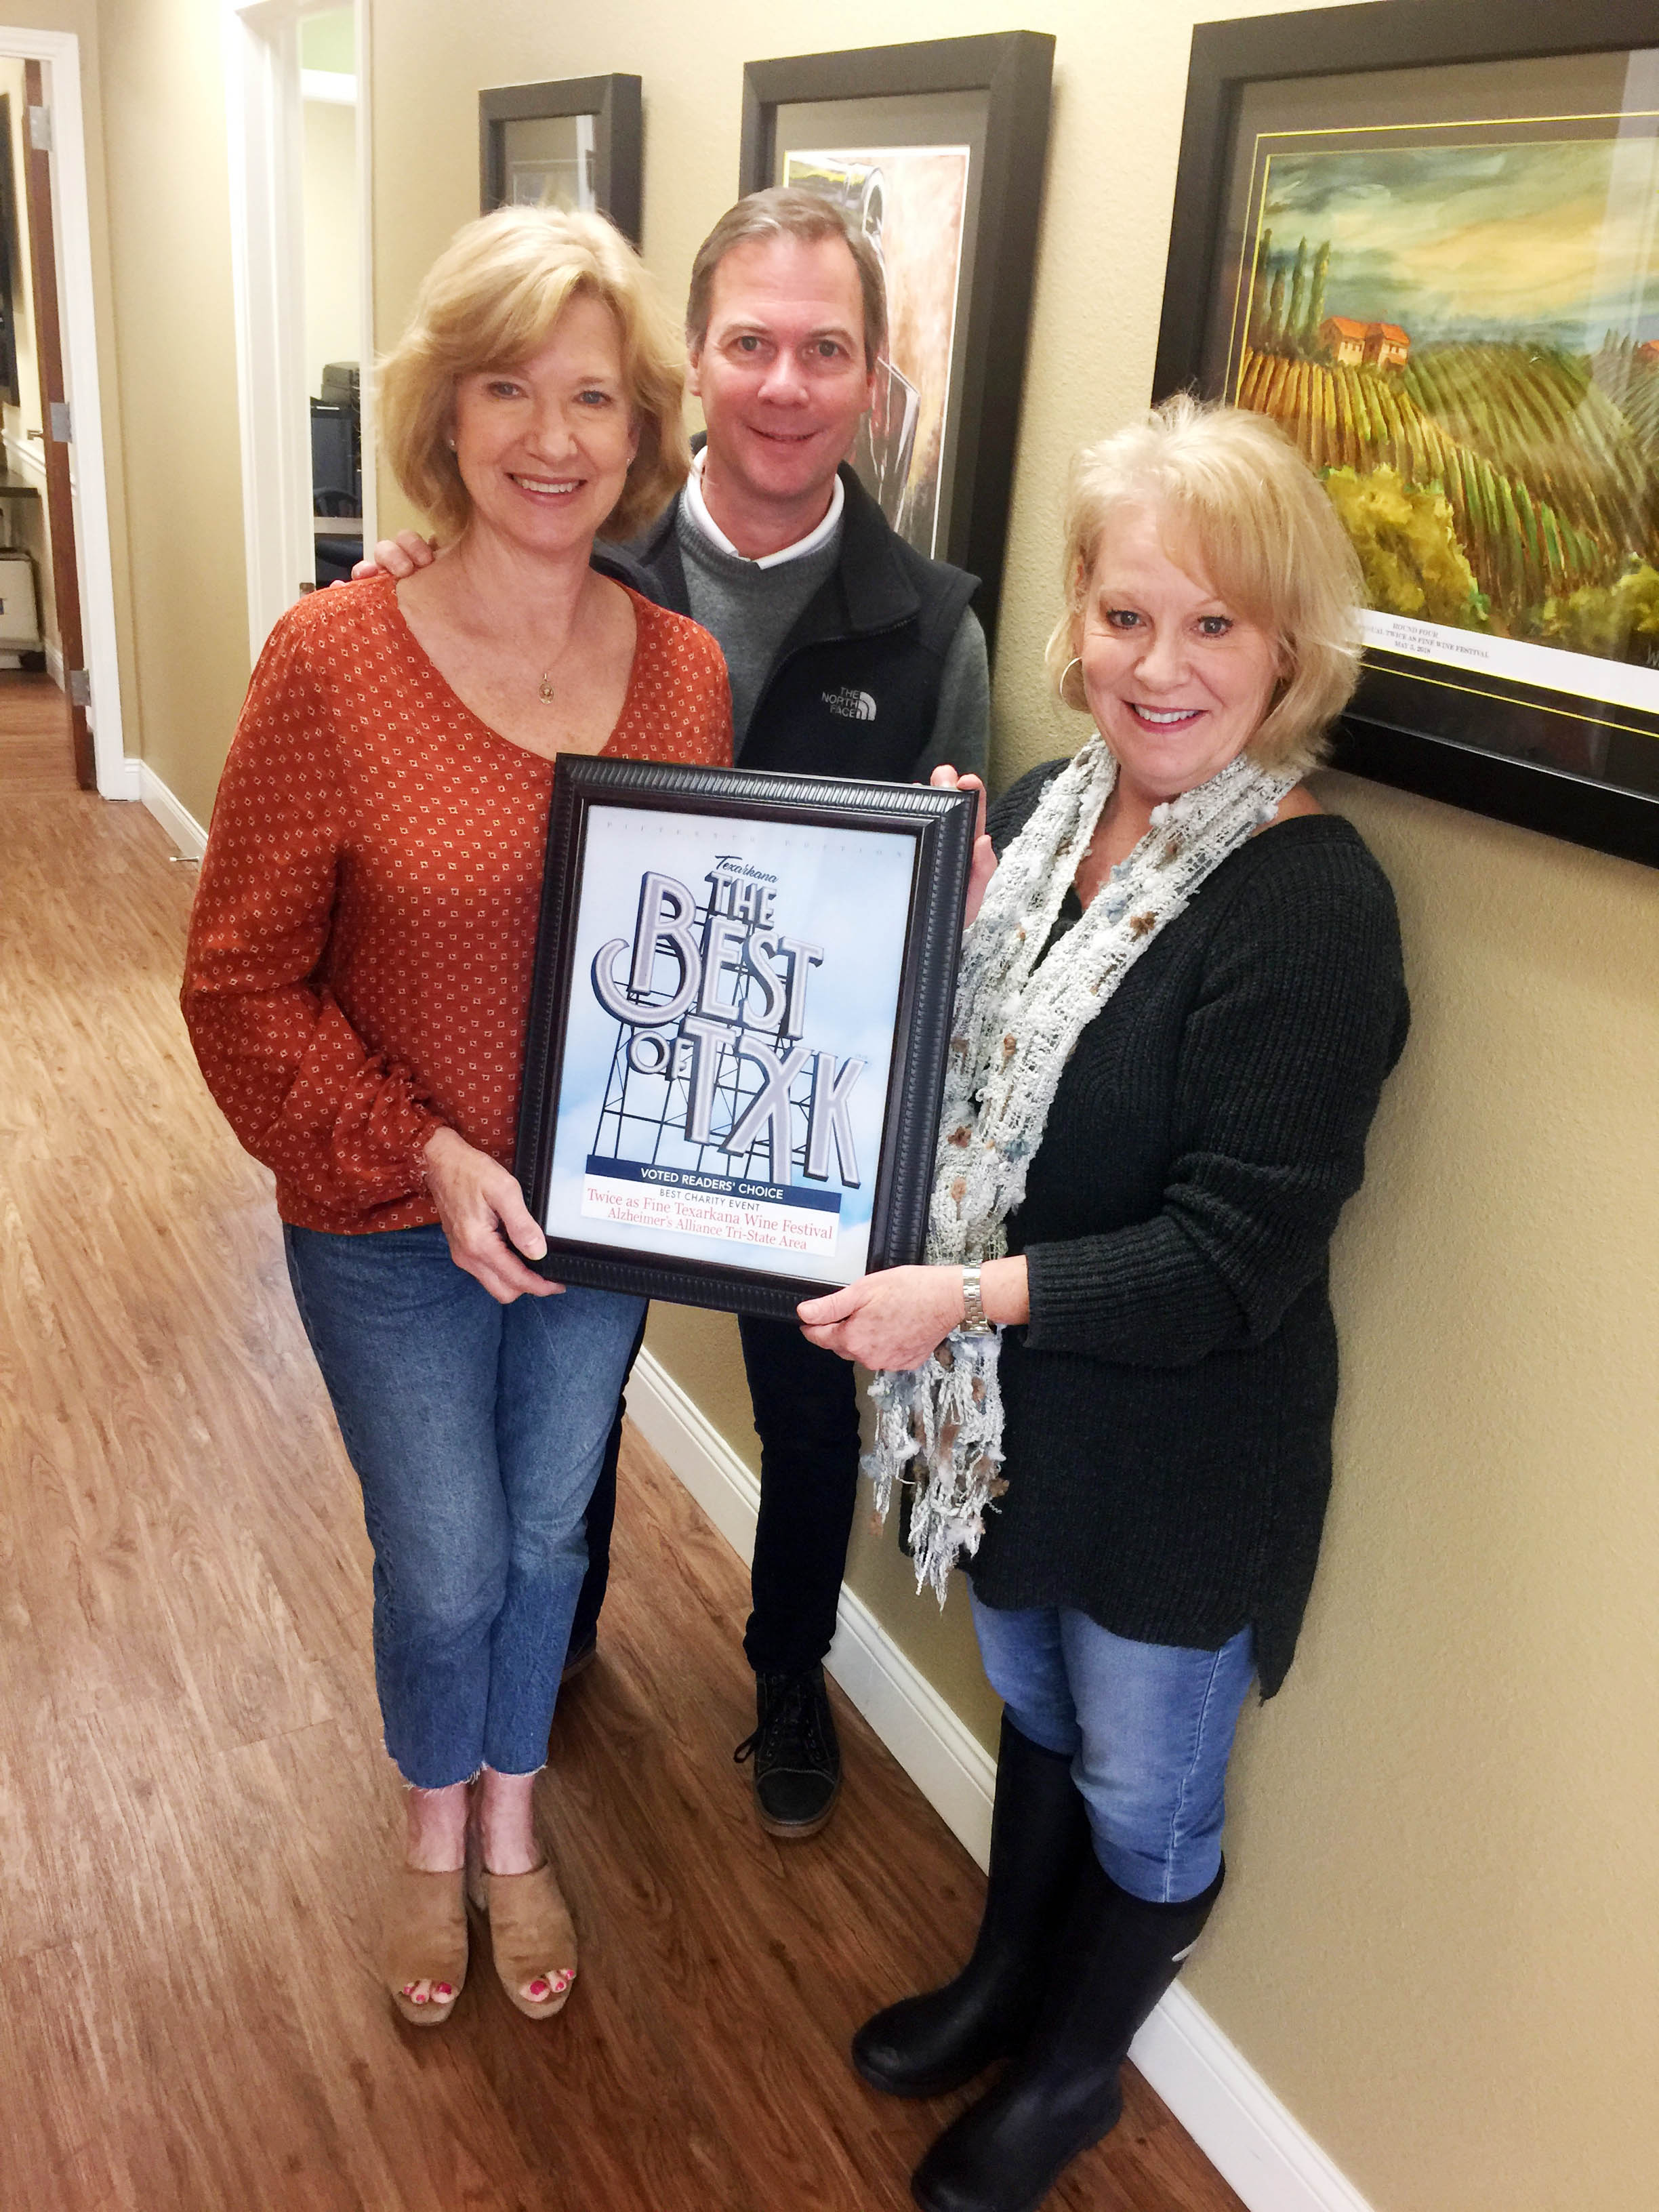 TWICE AS FINE TEXARKANA WINE FESTIVAL - ALZHEIMER'S ALLIANCE TRI-STATE AREA – Cathy and Mark Van Herpen with Terrie Arnold